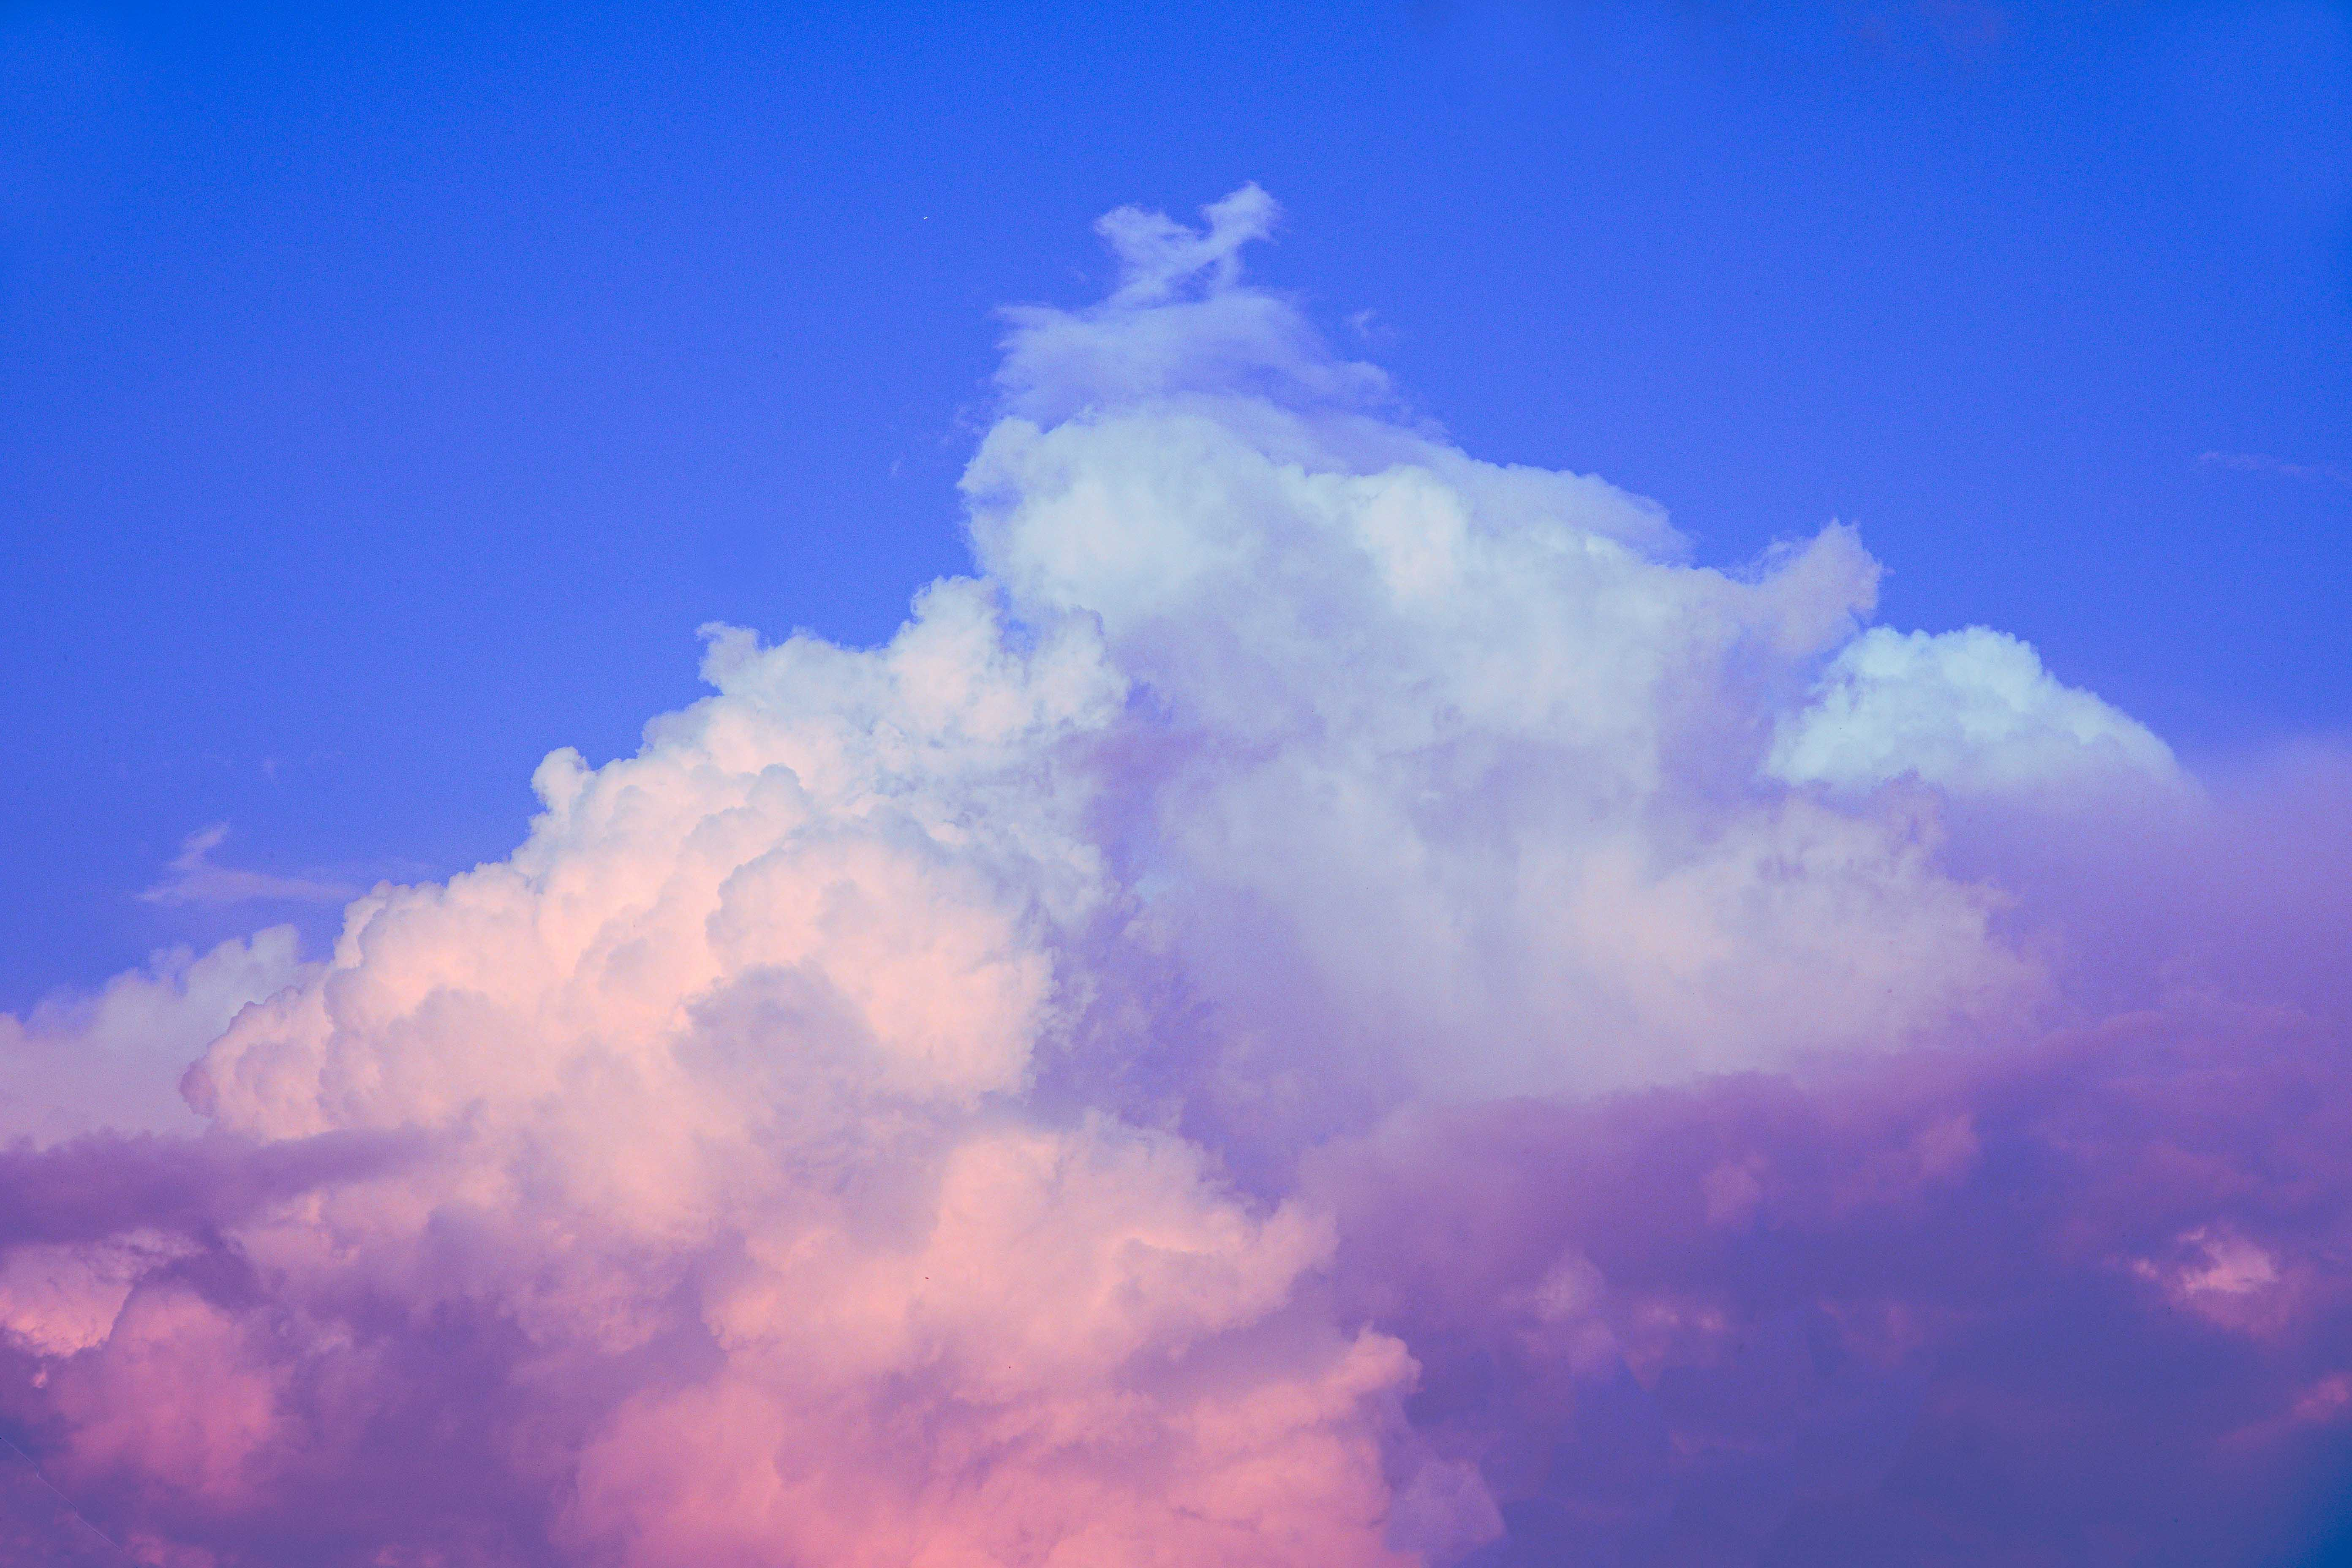 A photo of clouds